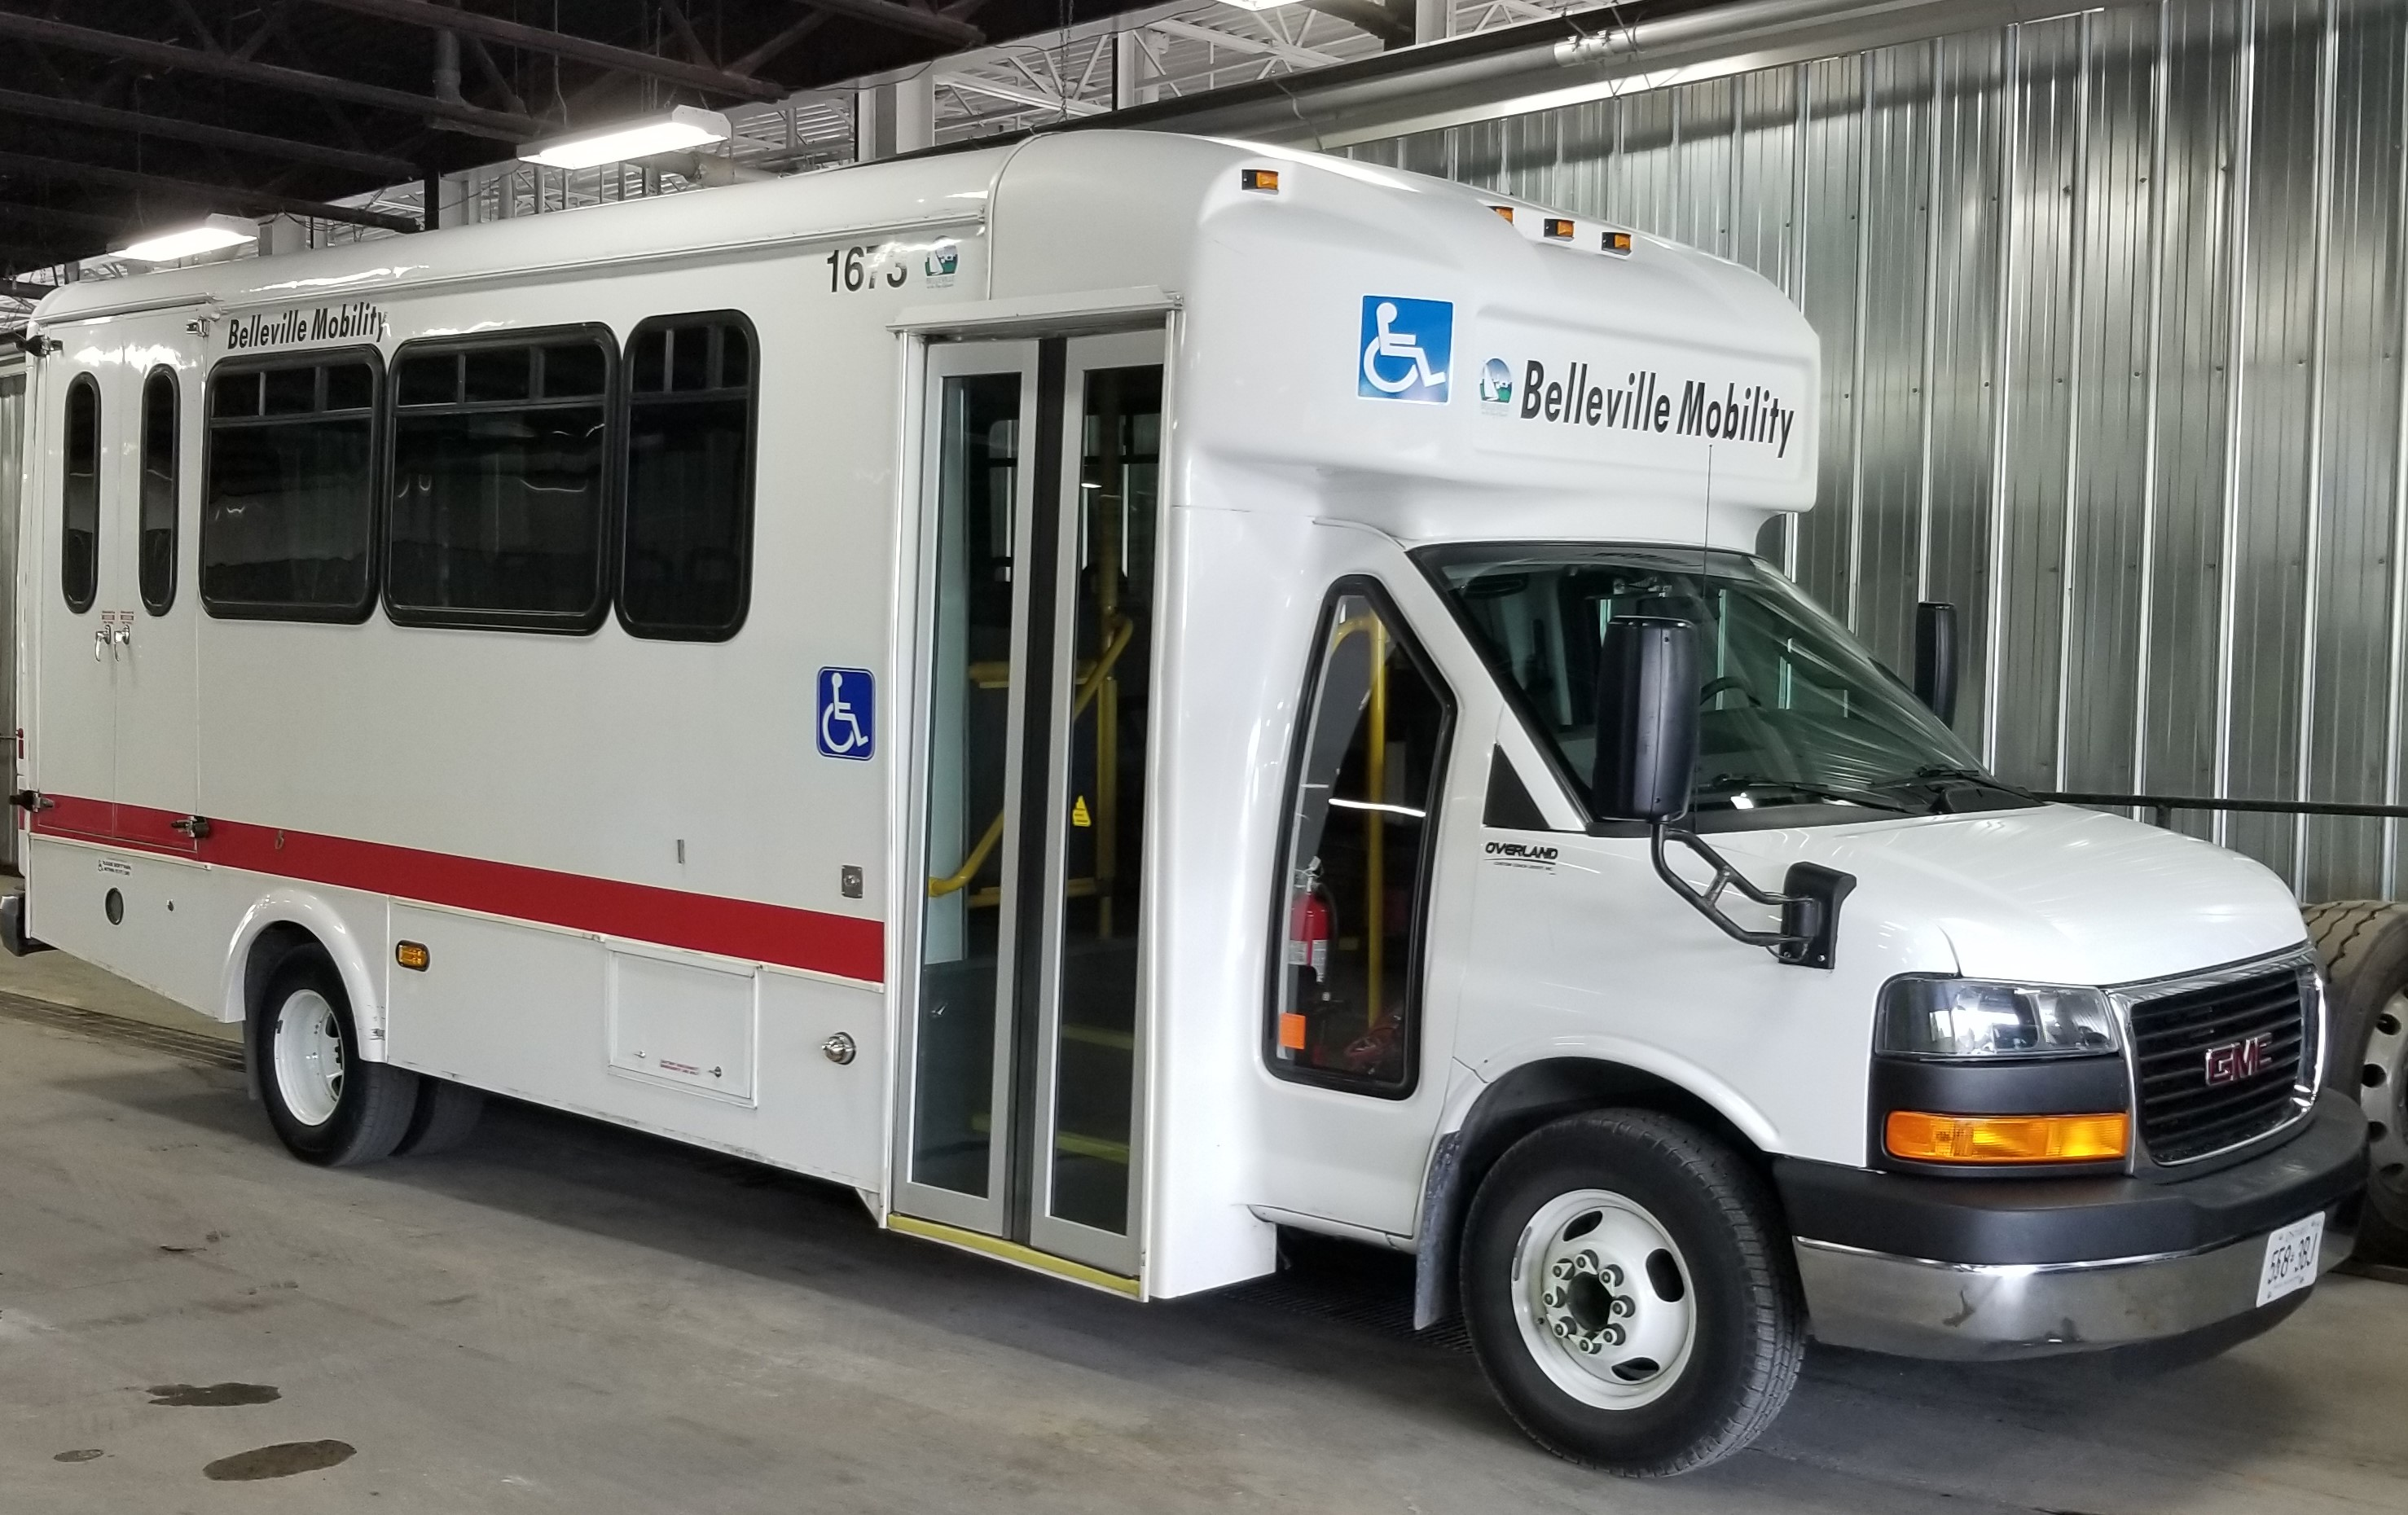 the Mobility Bus vehicle is shorter than a conventional transit bus and features rear lift boarding for people using mobility devices